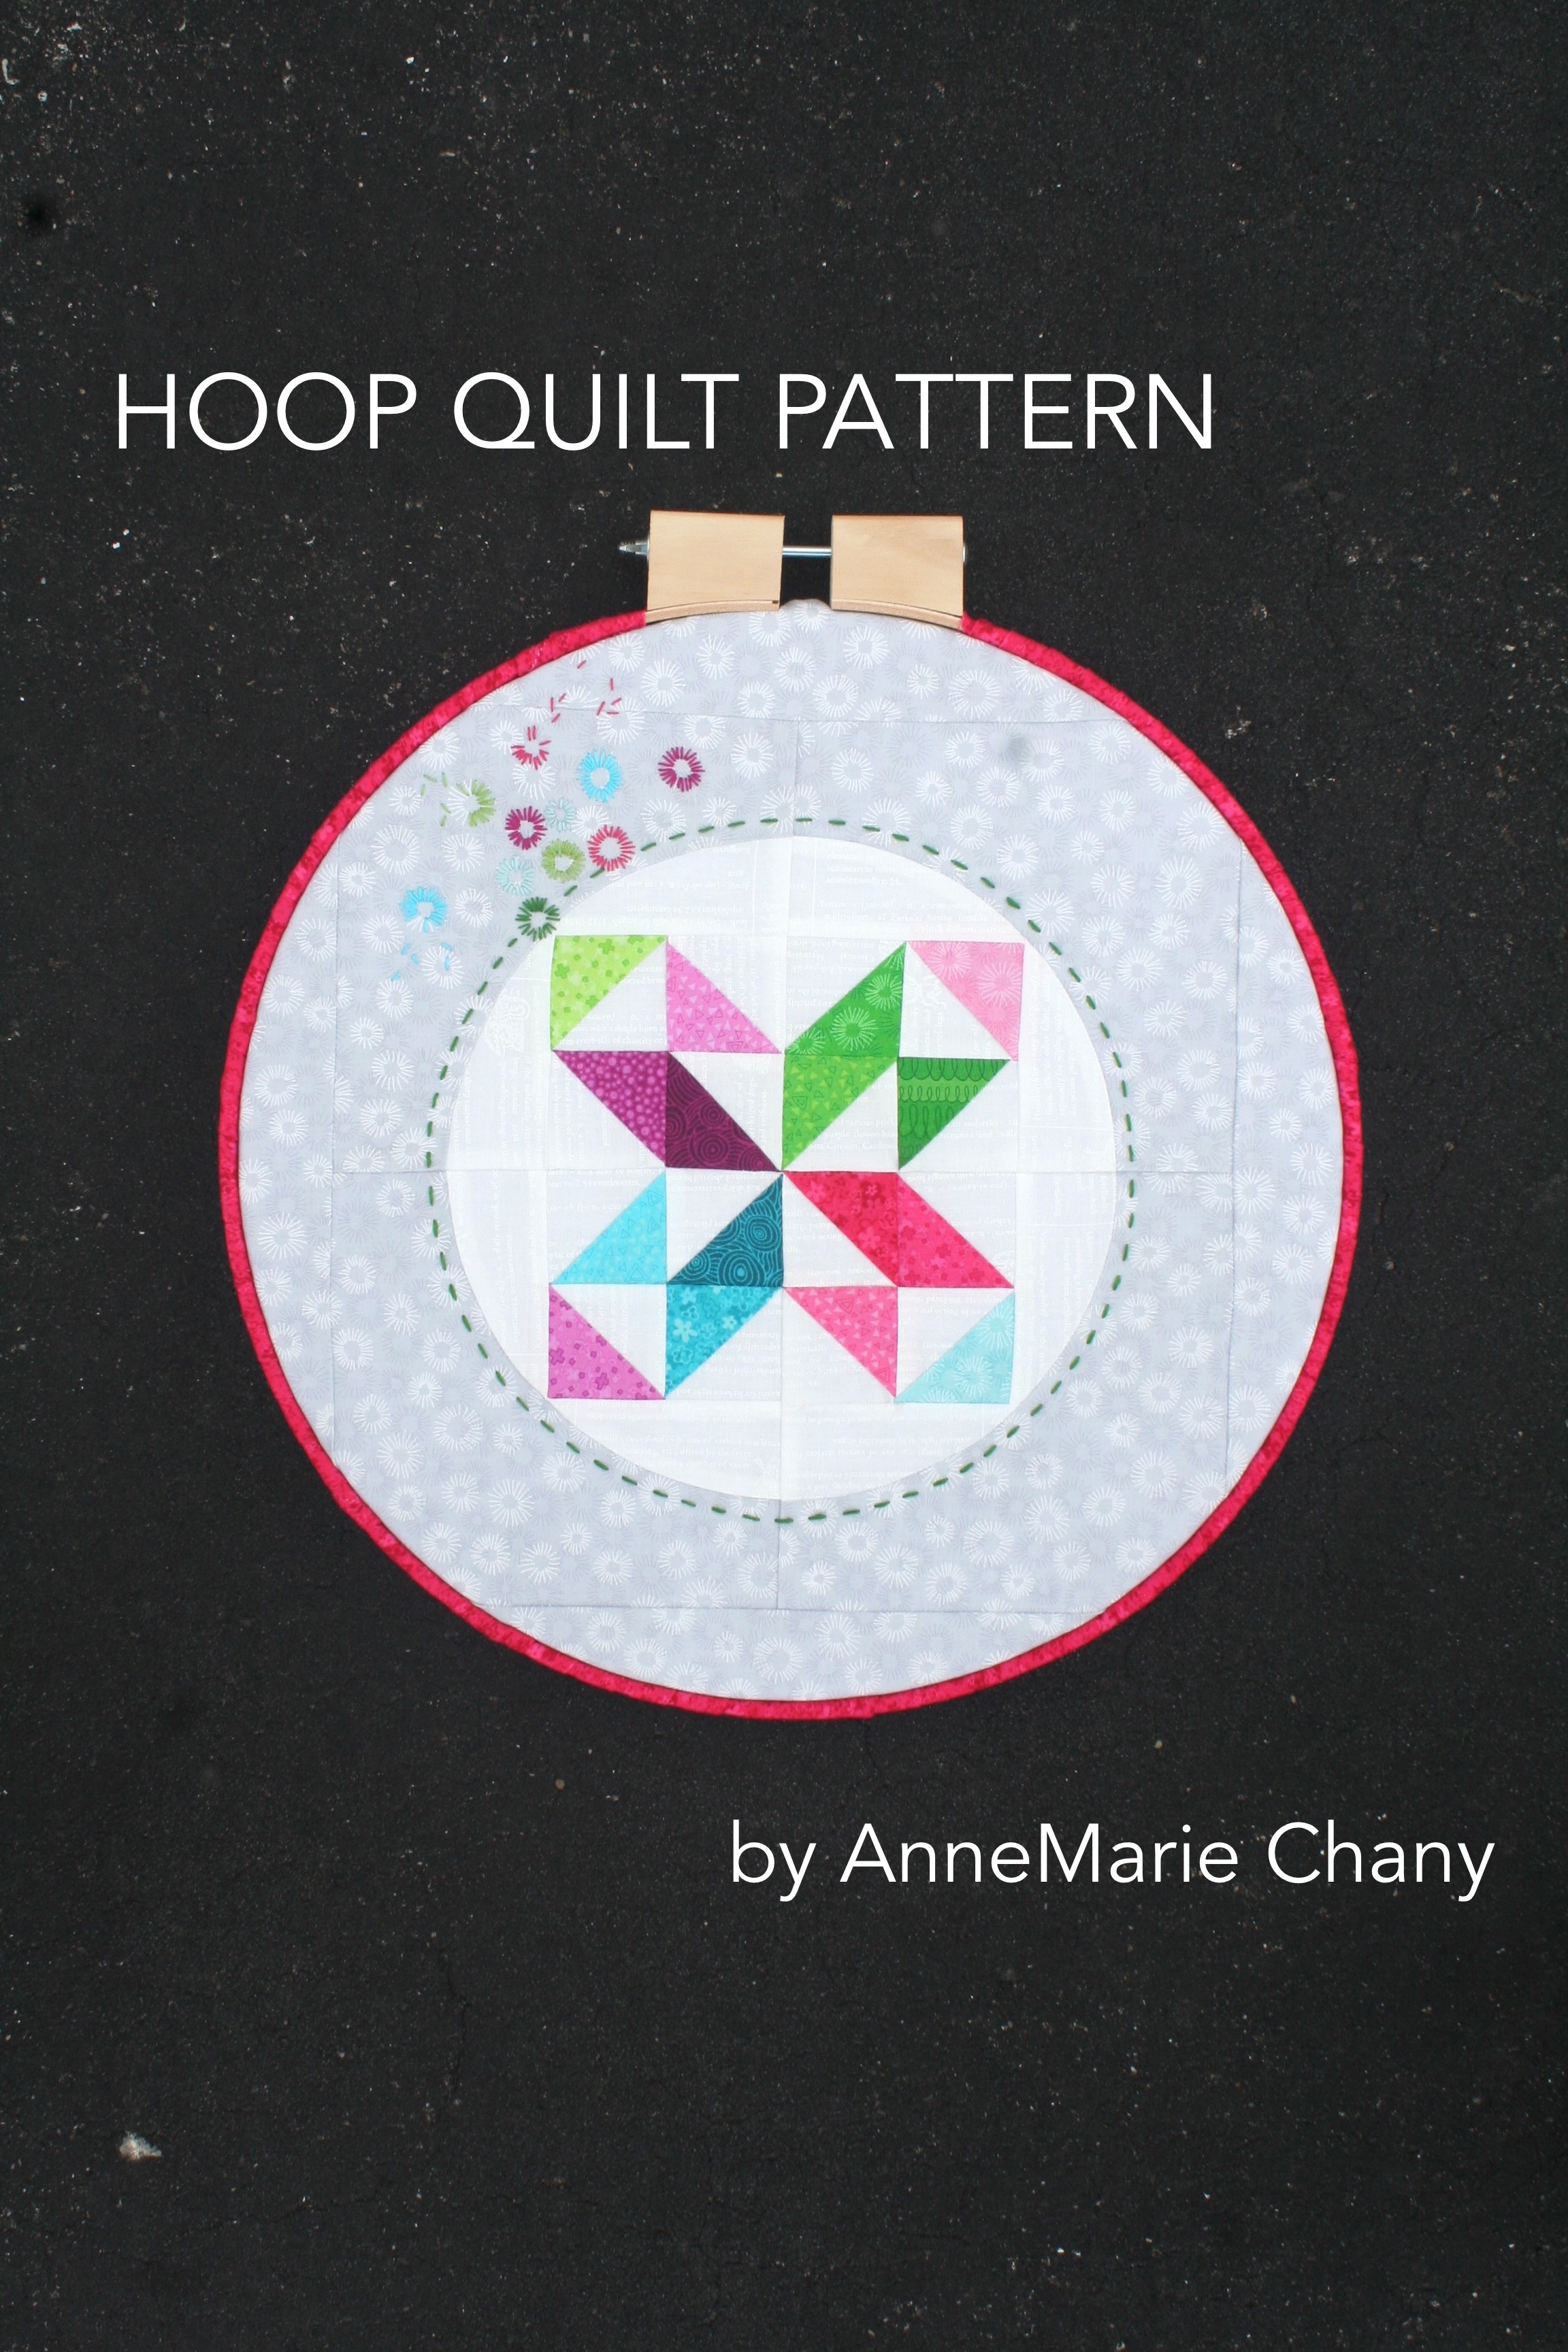 HOOP QUILT Sample with Hopscotch Fabrics